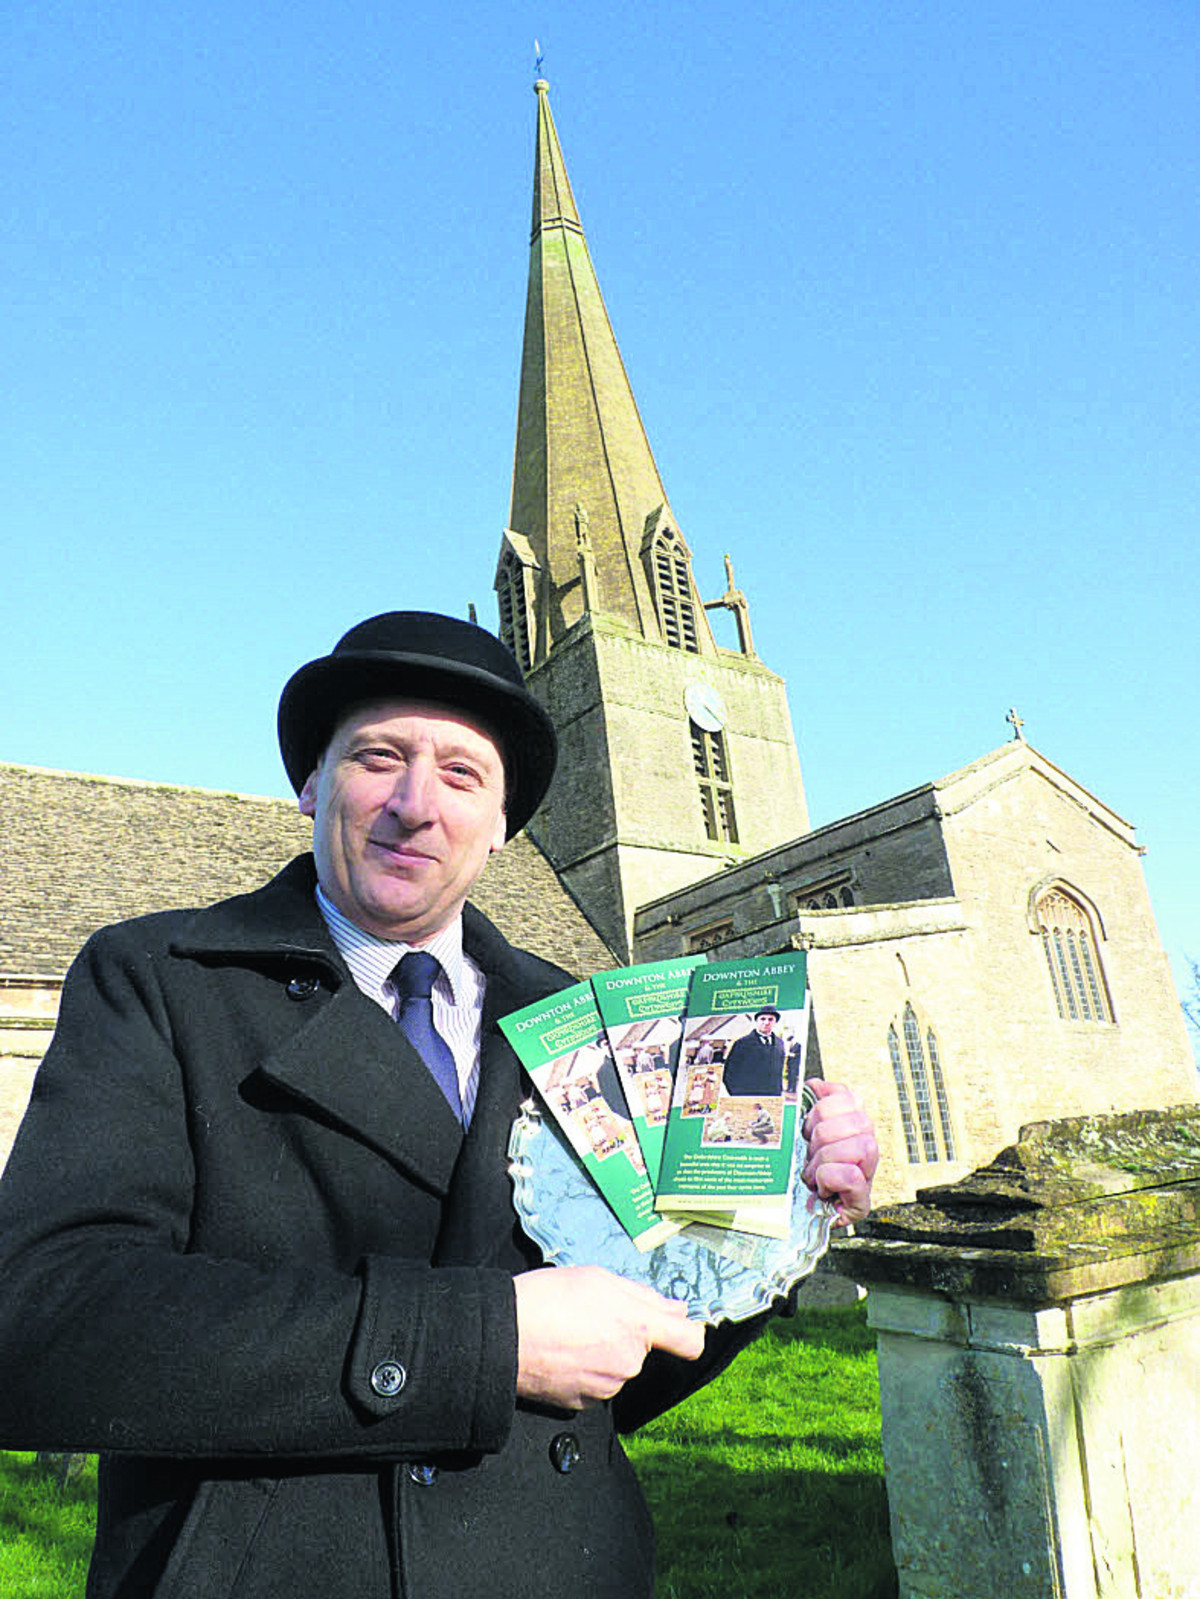 West Oxfordshire District Council tourism development officer Chris Jackson outside St Mary's Church, Bampton, one of the locations for Downton Abbey